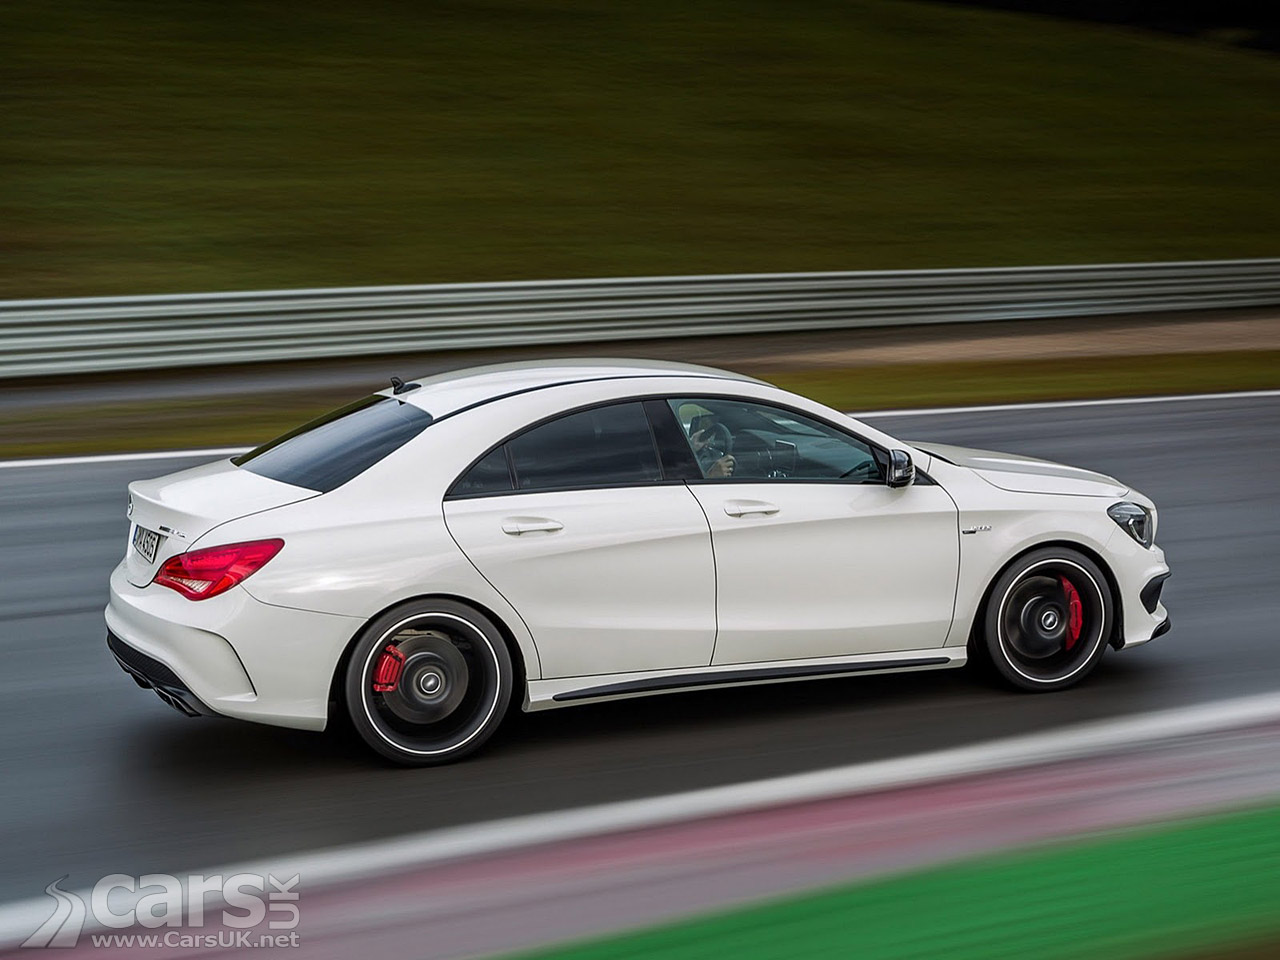 mercedes cla 45 amg pictures cars uk. Black Bedroom Furniture Sets. Home Design Ideas